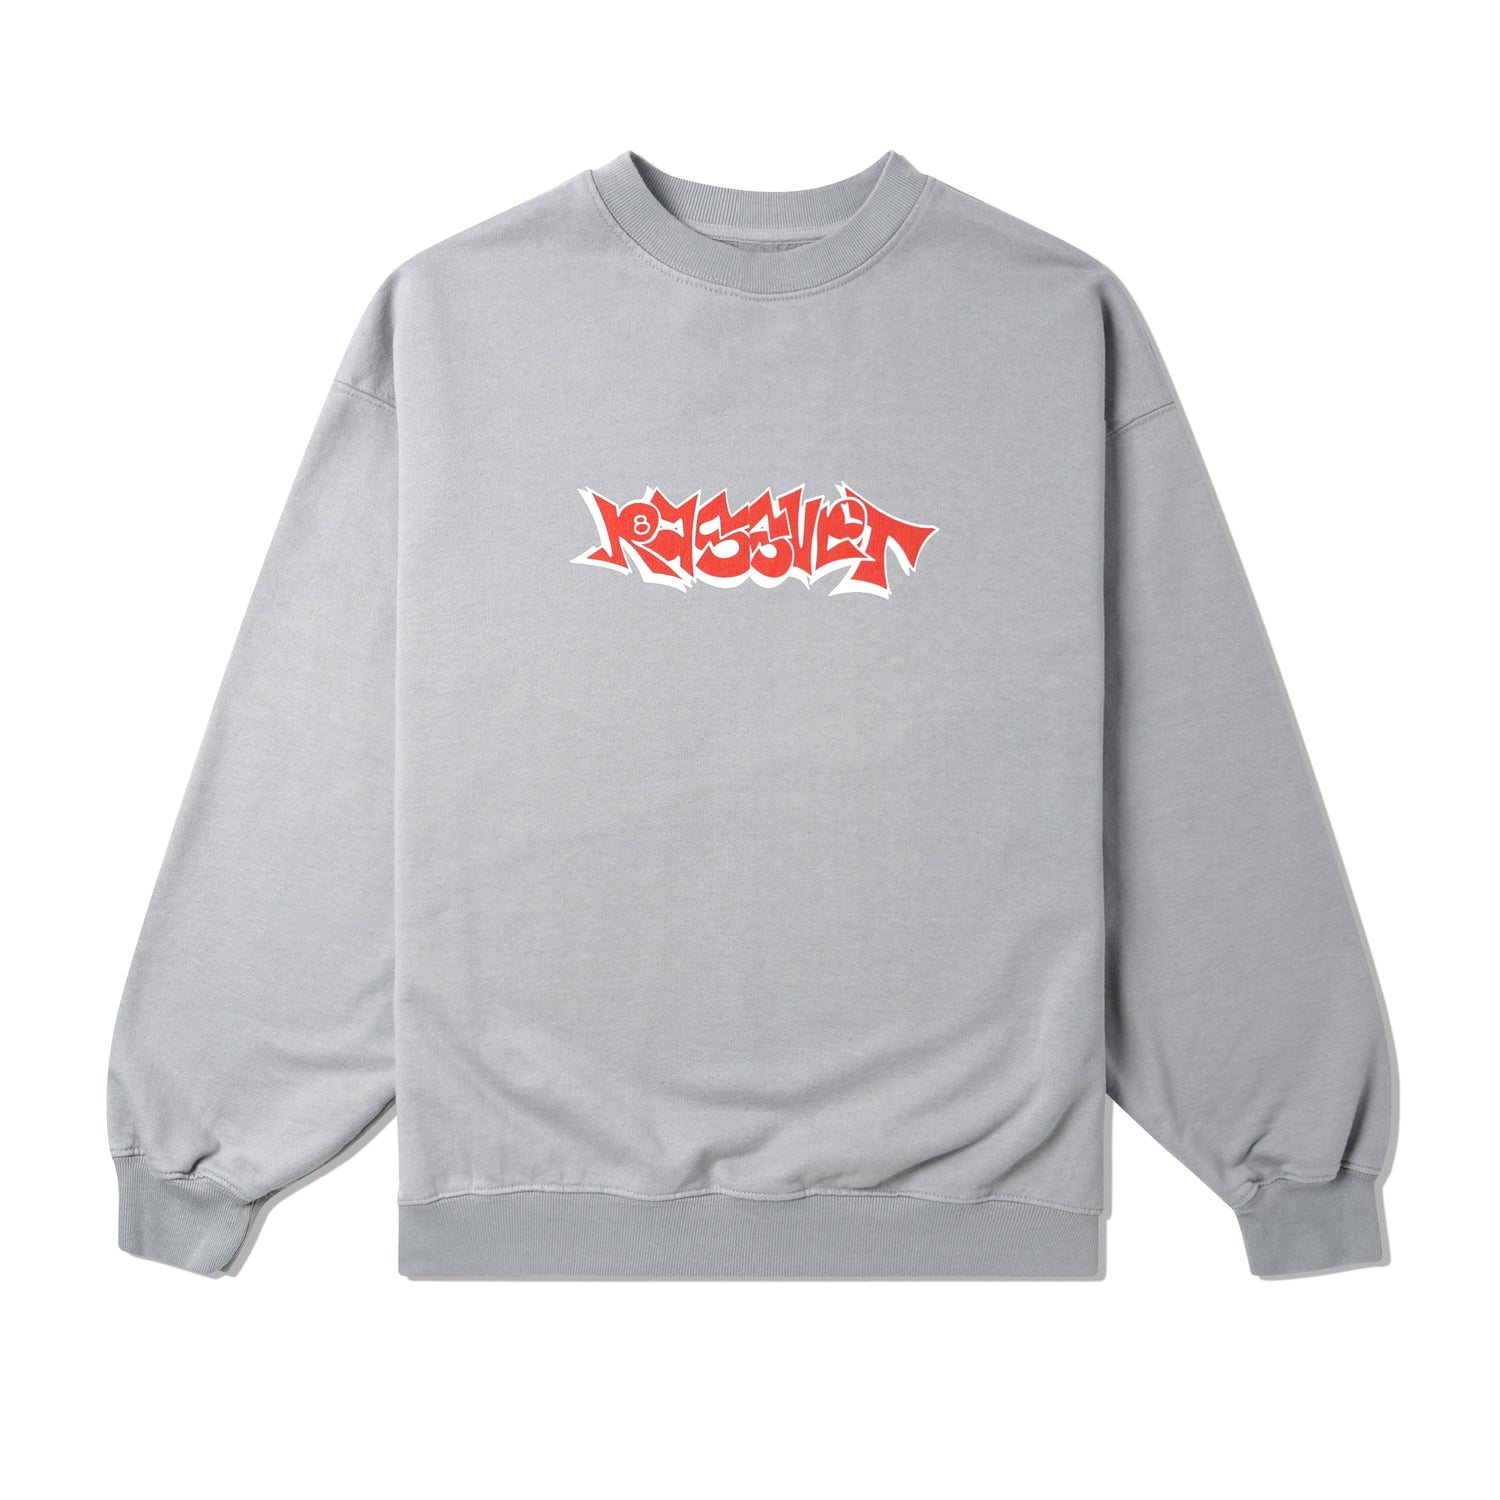 Graffiti Crewneck, Grey